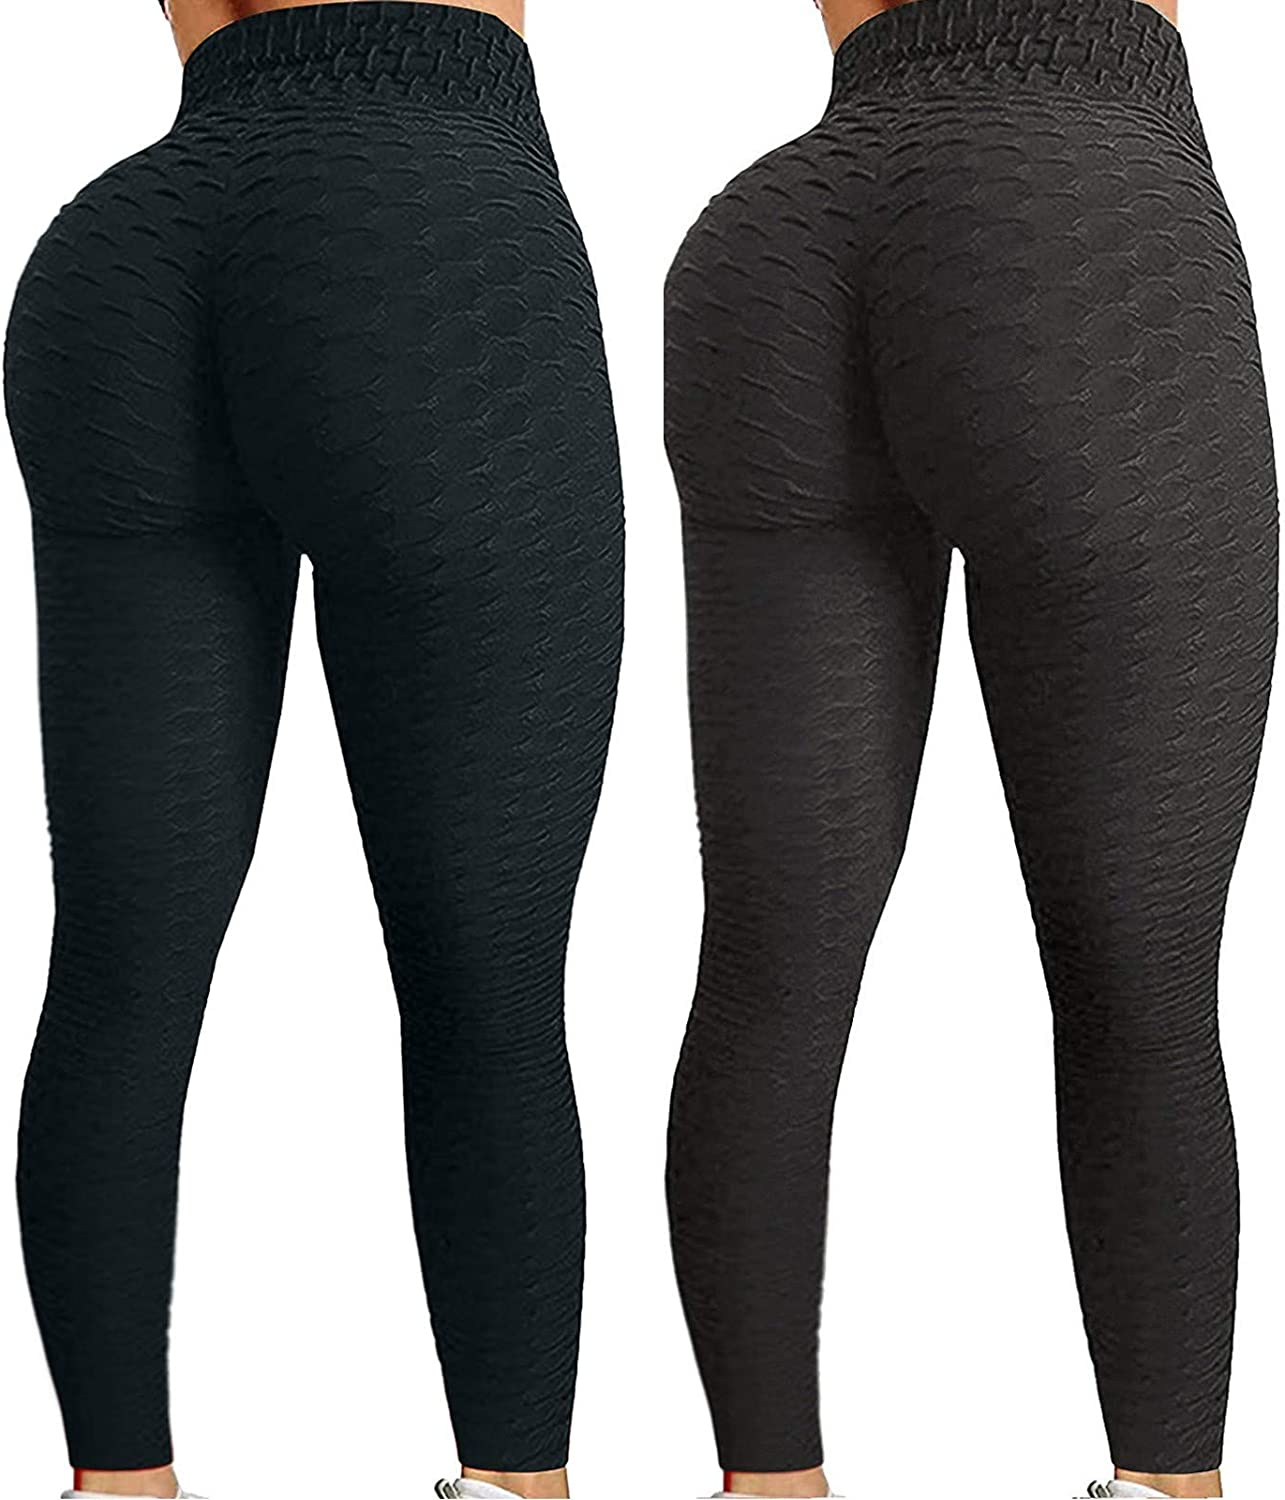 Workout Leggings for Women,Women High Waisted Yoga Pants Butt Lift Ruched Scrunch Legging Tummy Control Booty Tights